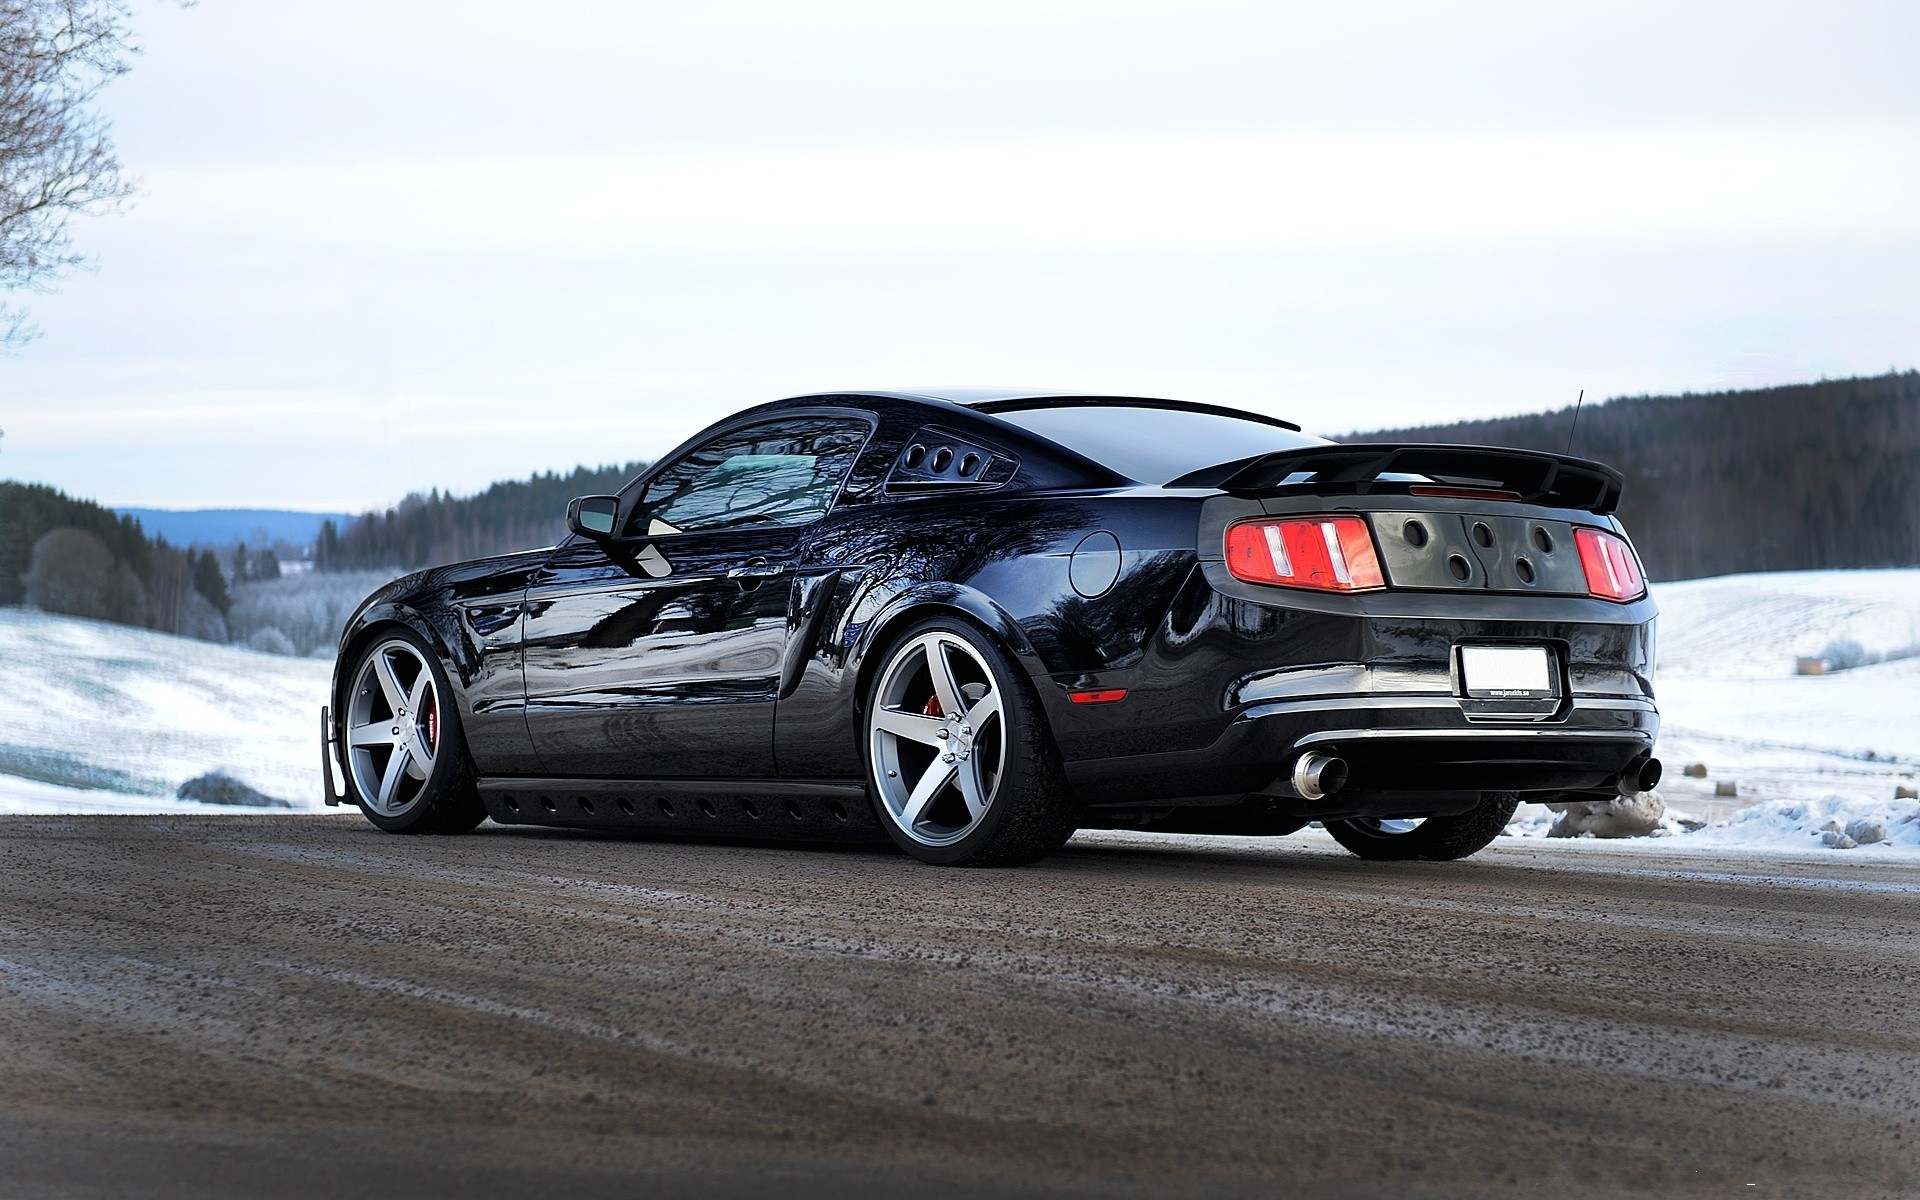 Ford Mustang GT 2013 - 1920x1200